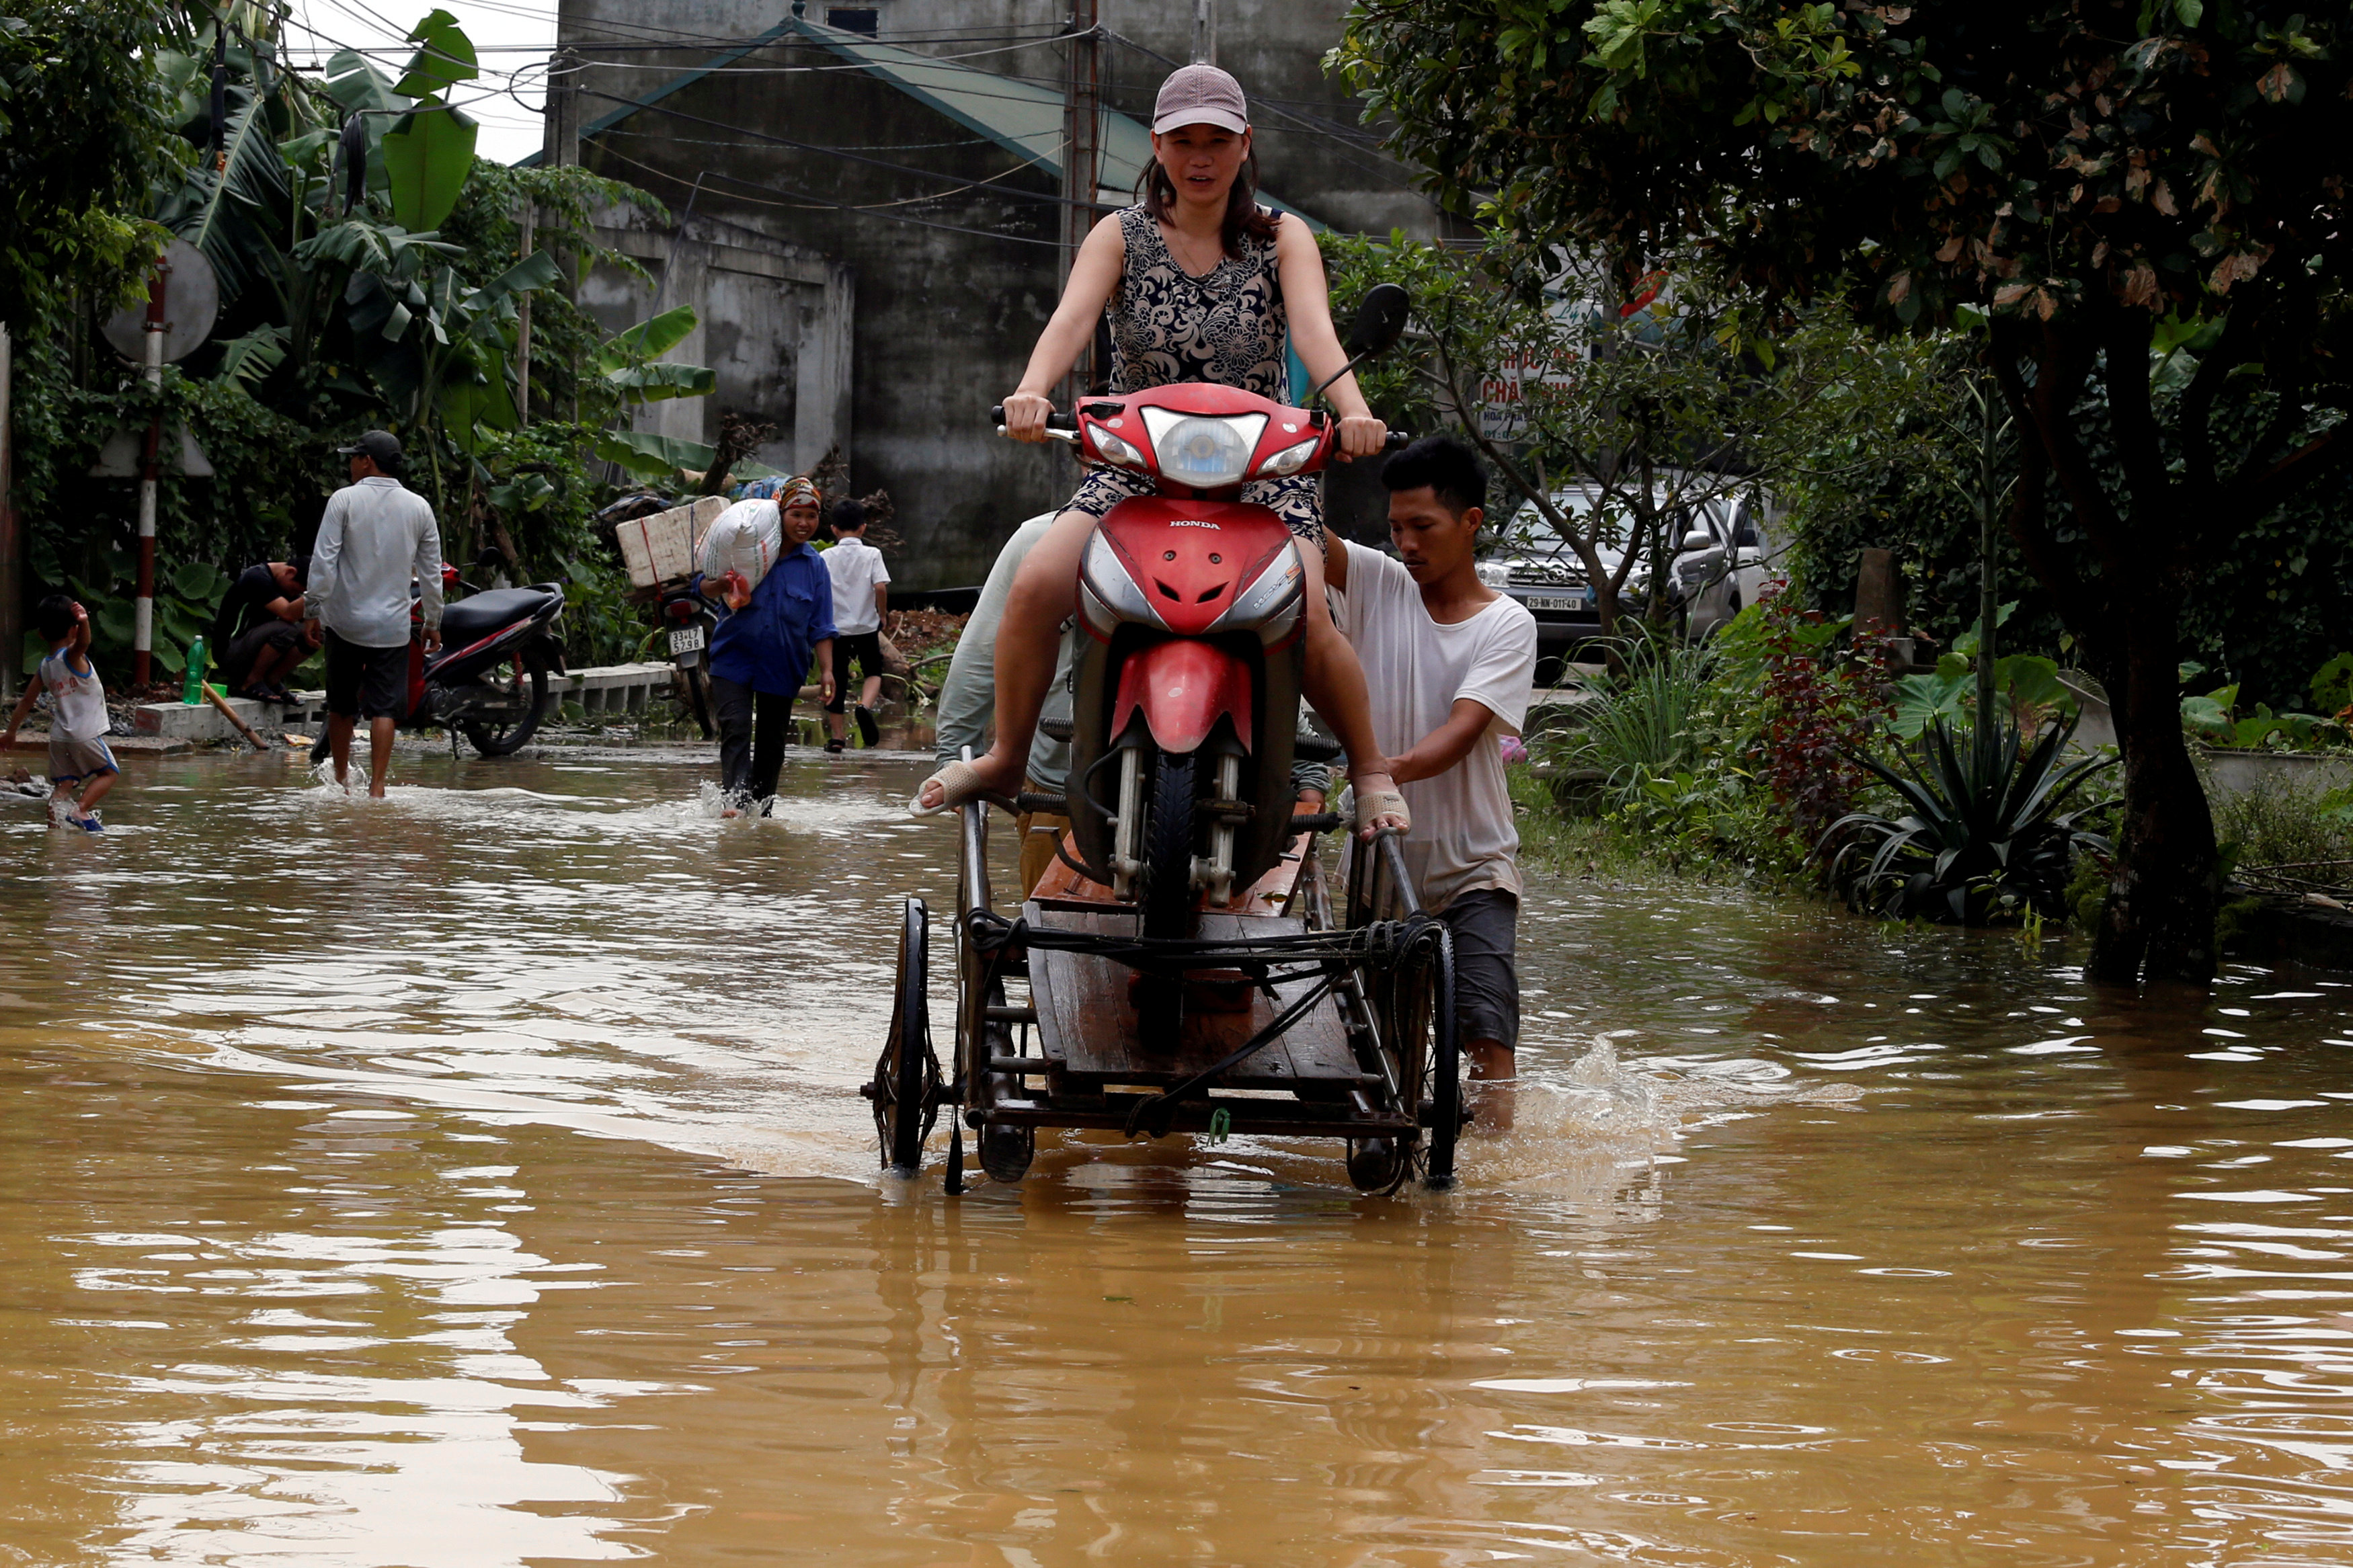 Men evacuate a woman through a flooded road after a tropical depression in Hanoi, Vietnam October 13, 2017. Photo: Reuters